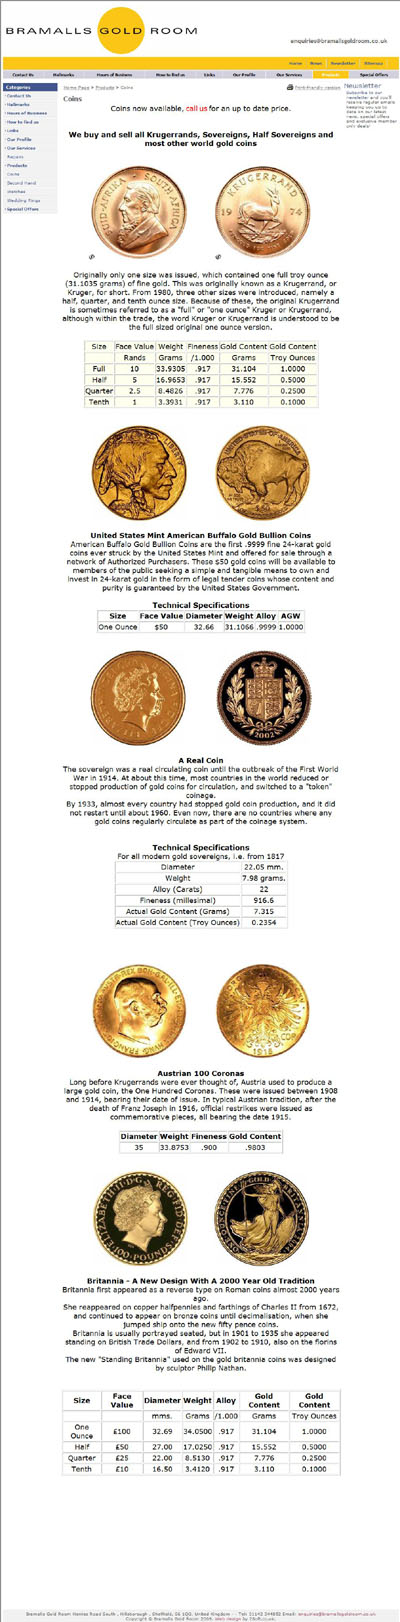 Bramalls Gold Room (bramallsgoldroom.co.uk) Gold Coins Page